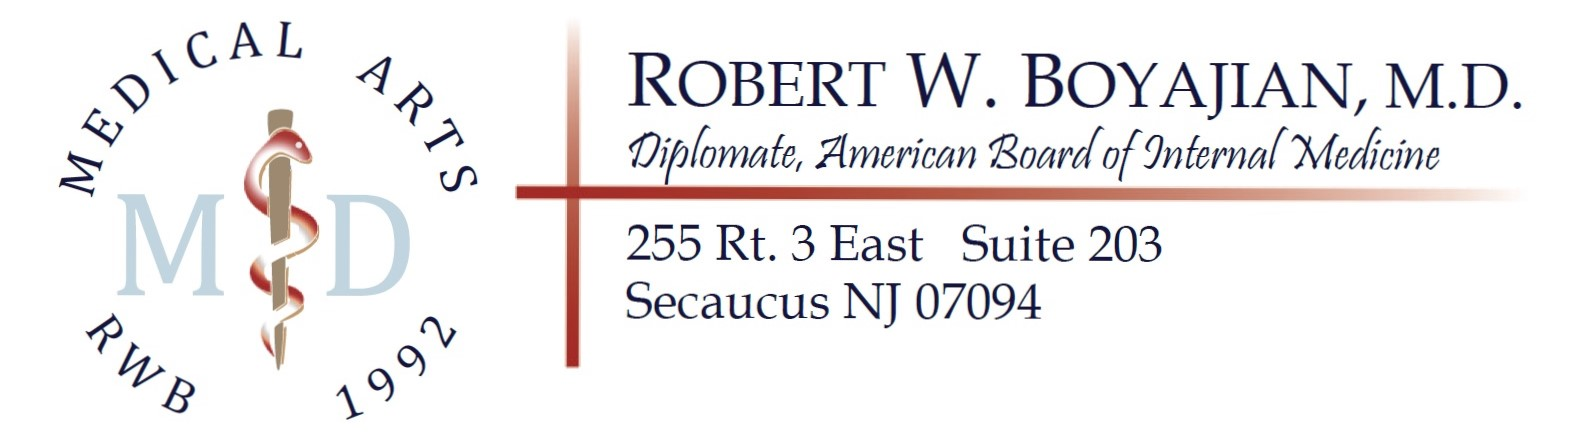 Robert W Boyajian, Md  Diplomate, American Board Of. Texas Nurse Practitioner License. Free Security Systems For Home. No Balance Transfer Fee Cards. Phone Services For Home Boston Cable Internet. Child Family School Social Worker. Printable Measuring Tape Inches. Best Treatment For Dark Under Eye Circles. Best Dentist In Arlington Va